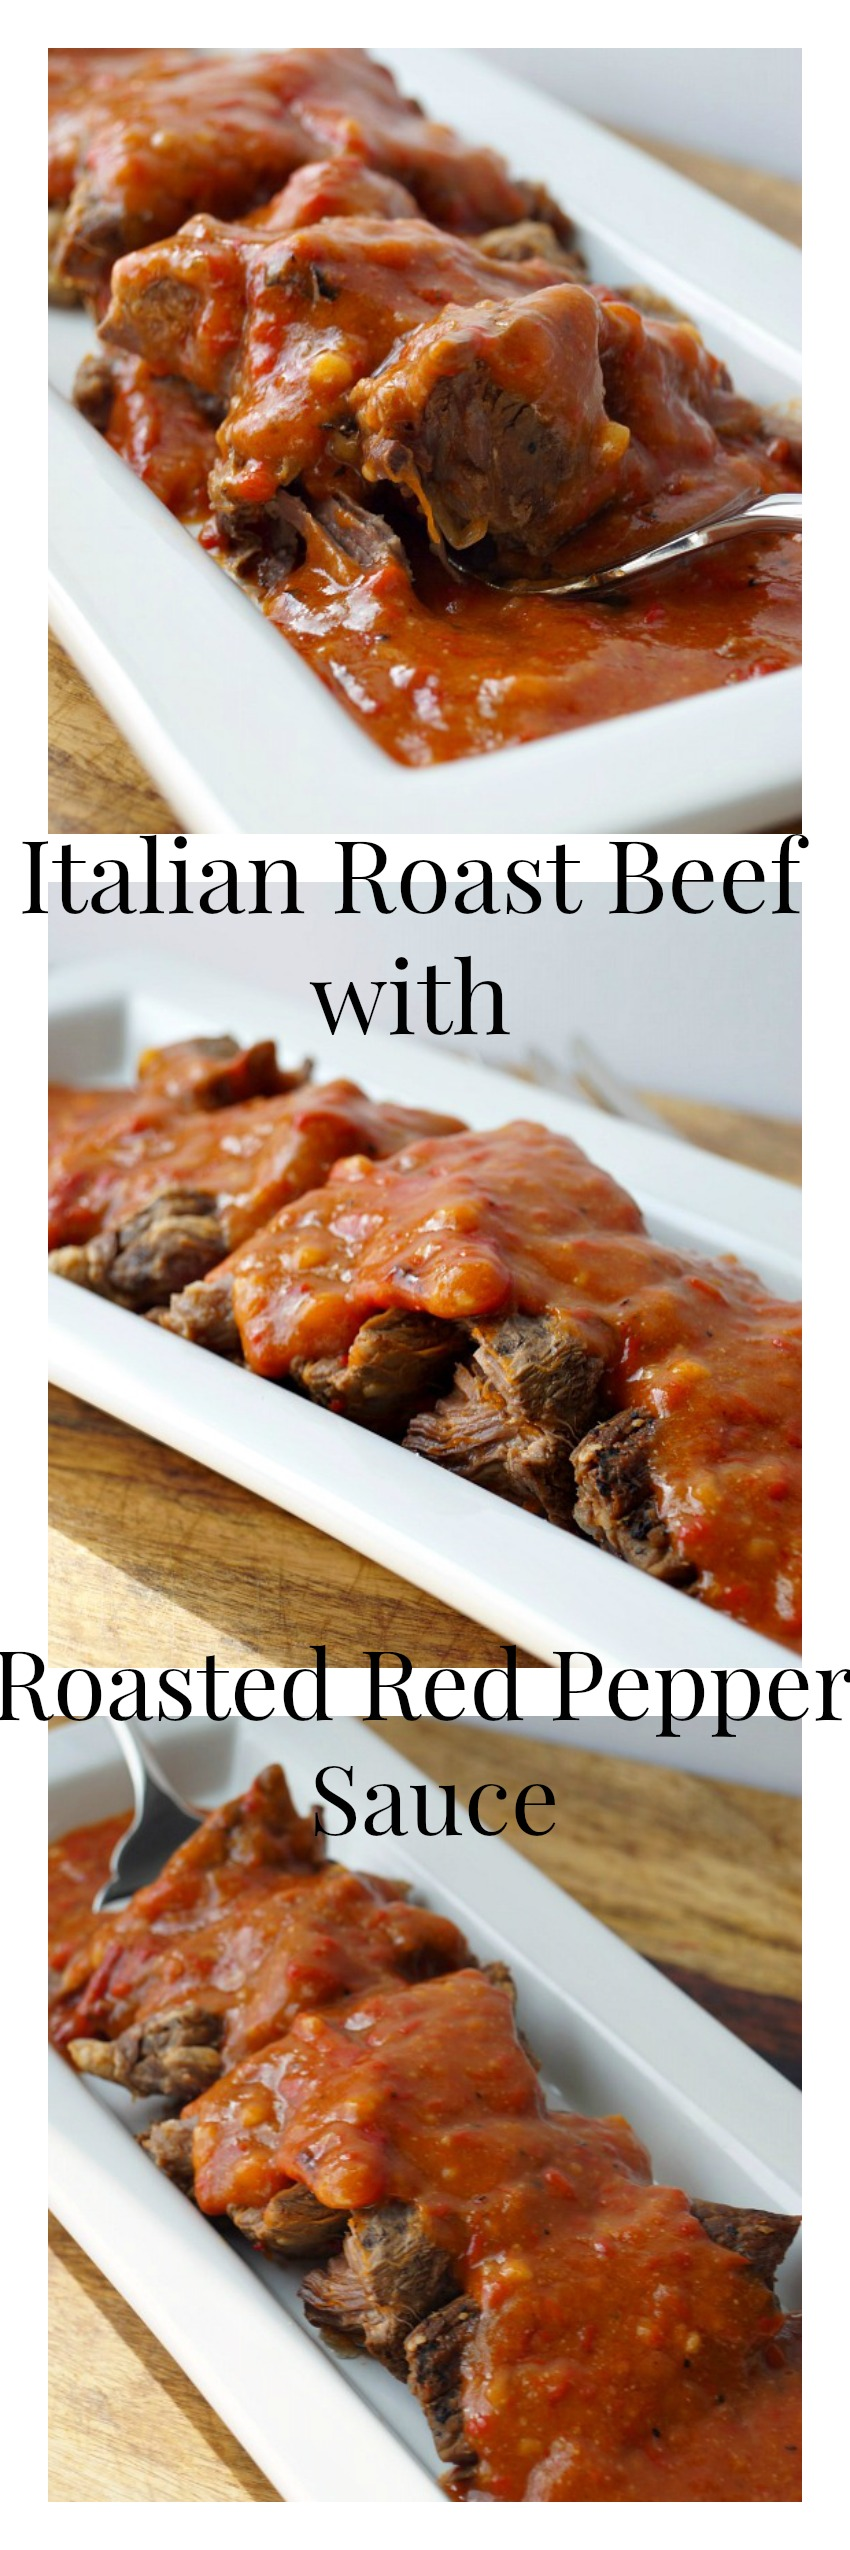 Italian Roast Beef with Roasted Red Pepper Sauce